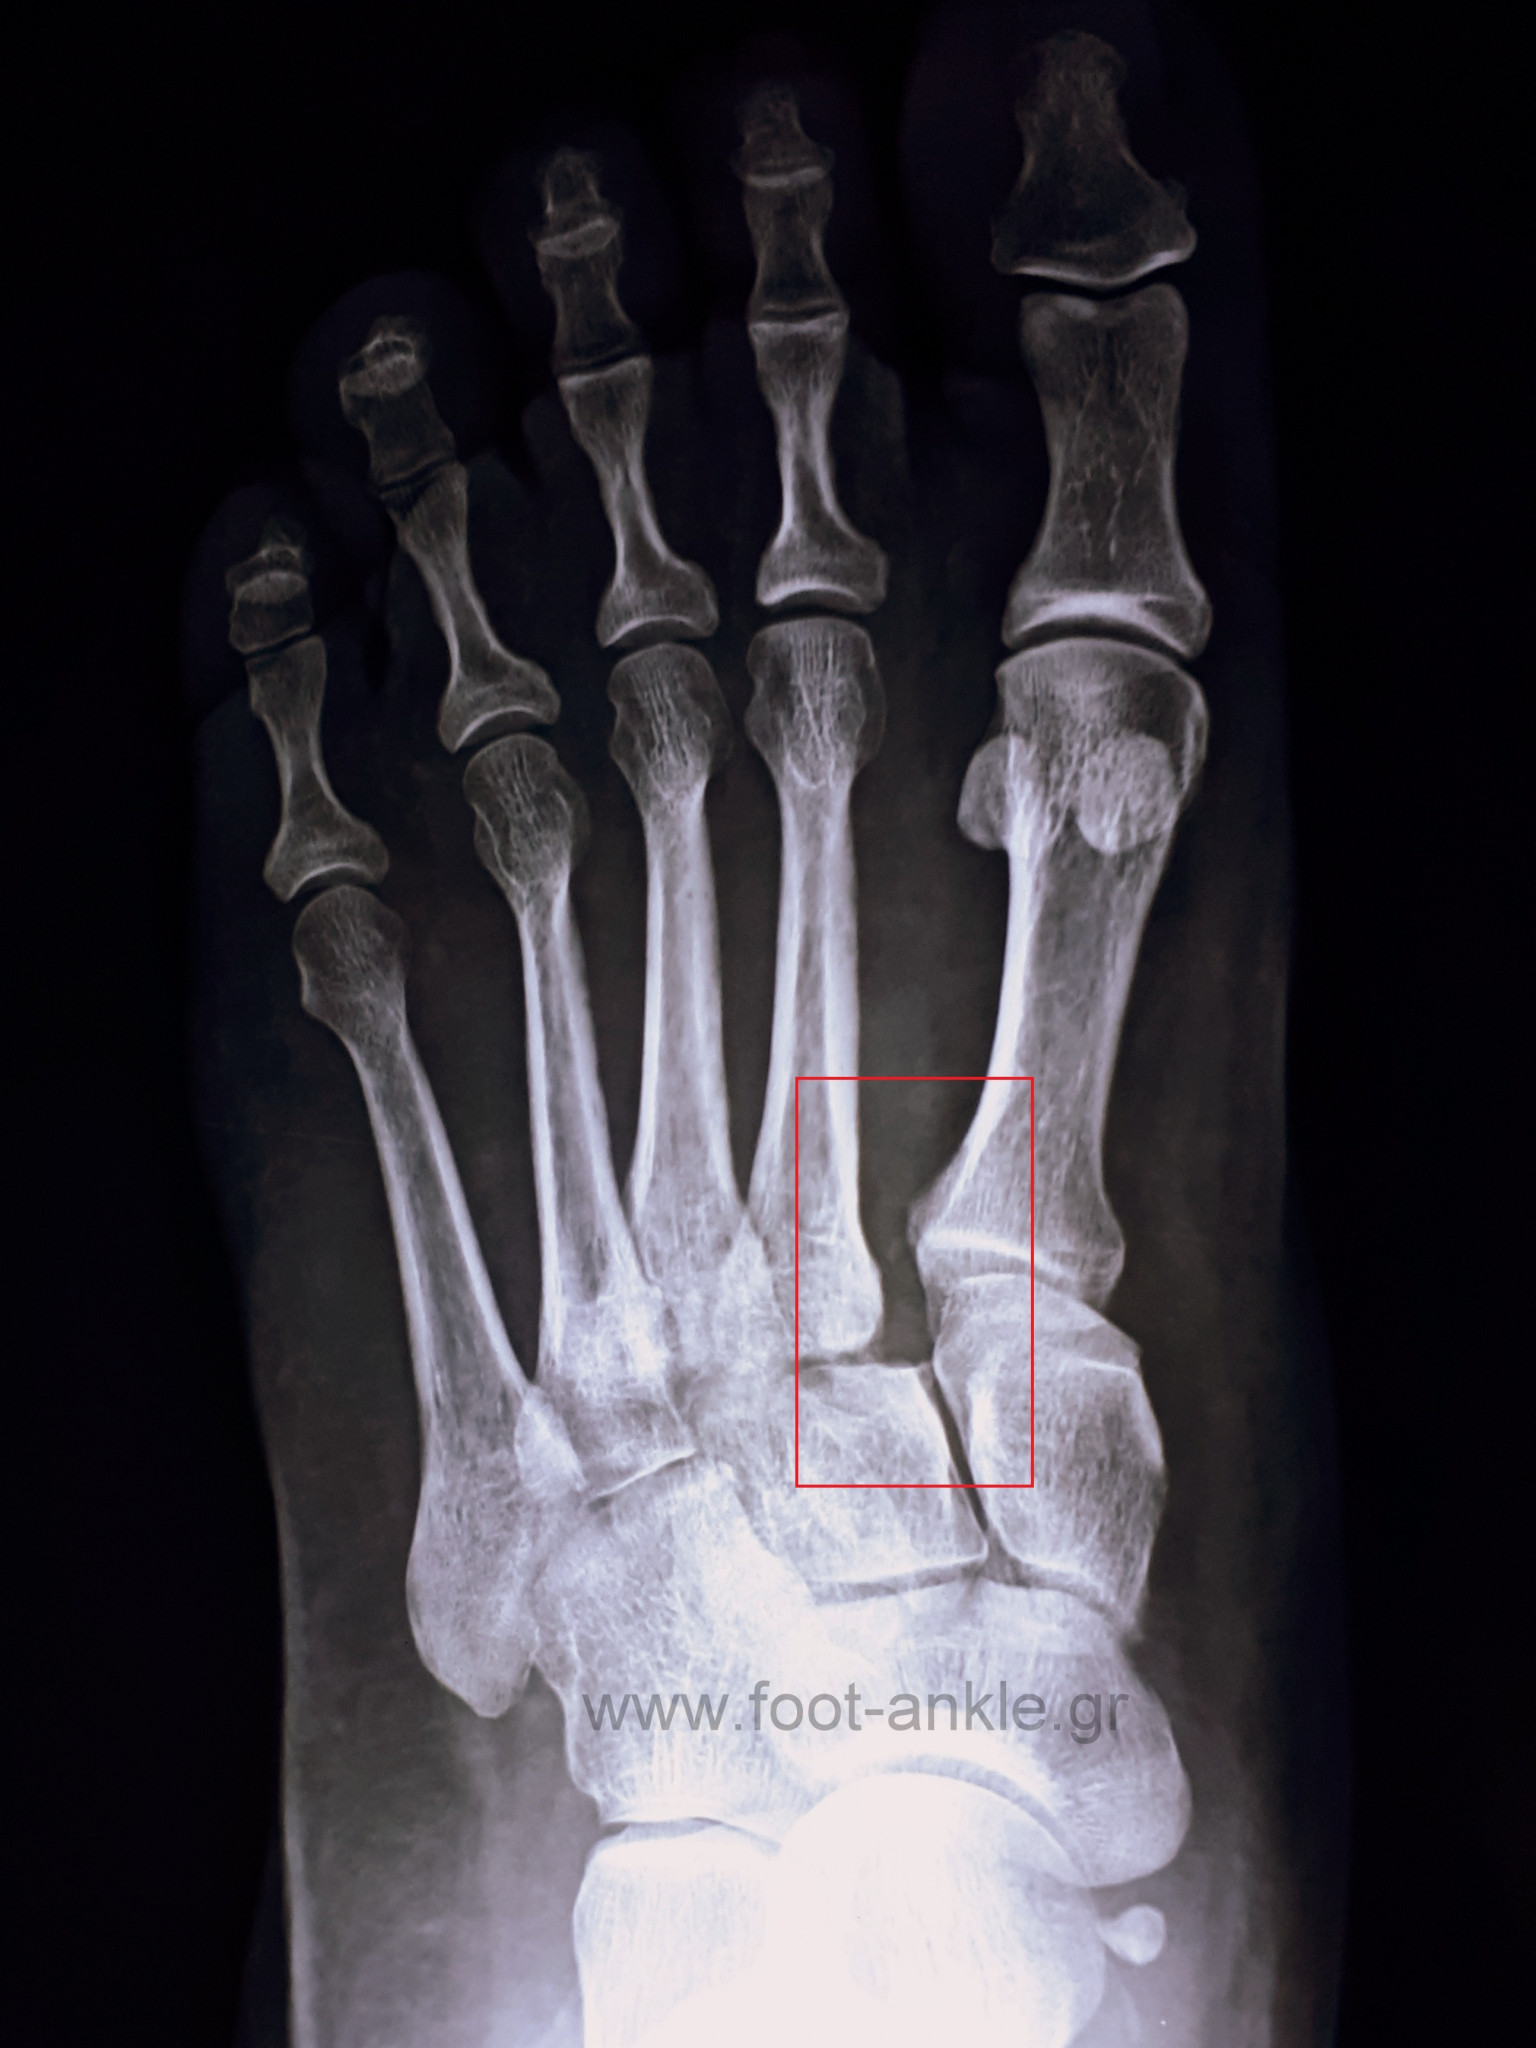 Lisfranc injury radiograph. XRay of foot with purely ligamentous Lisfranc injury at the base of the first and second metatarsals (red box).